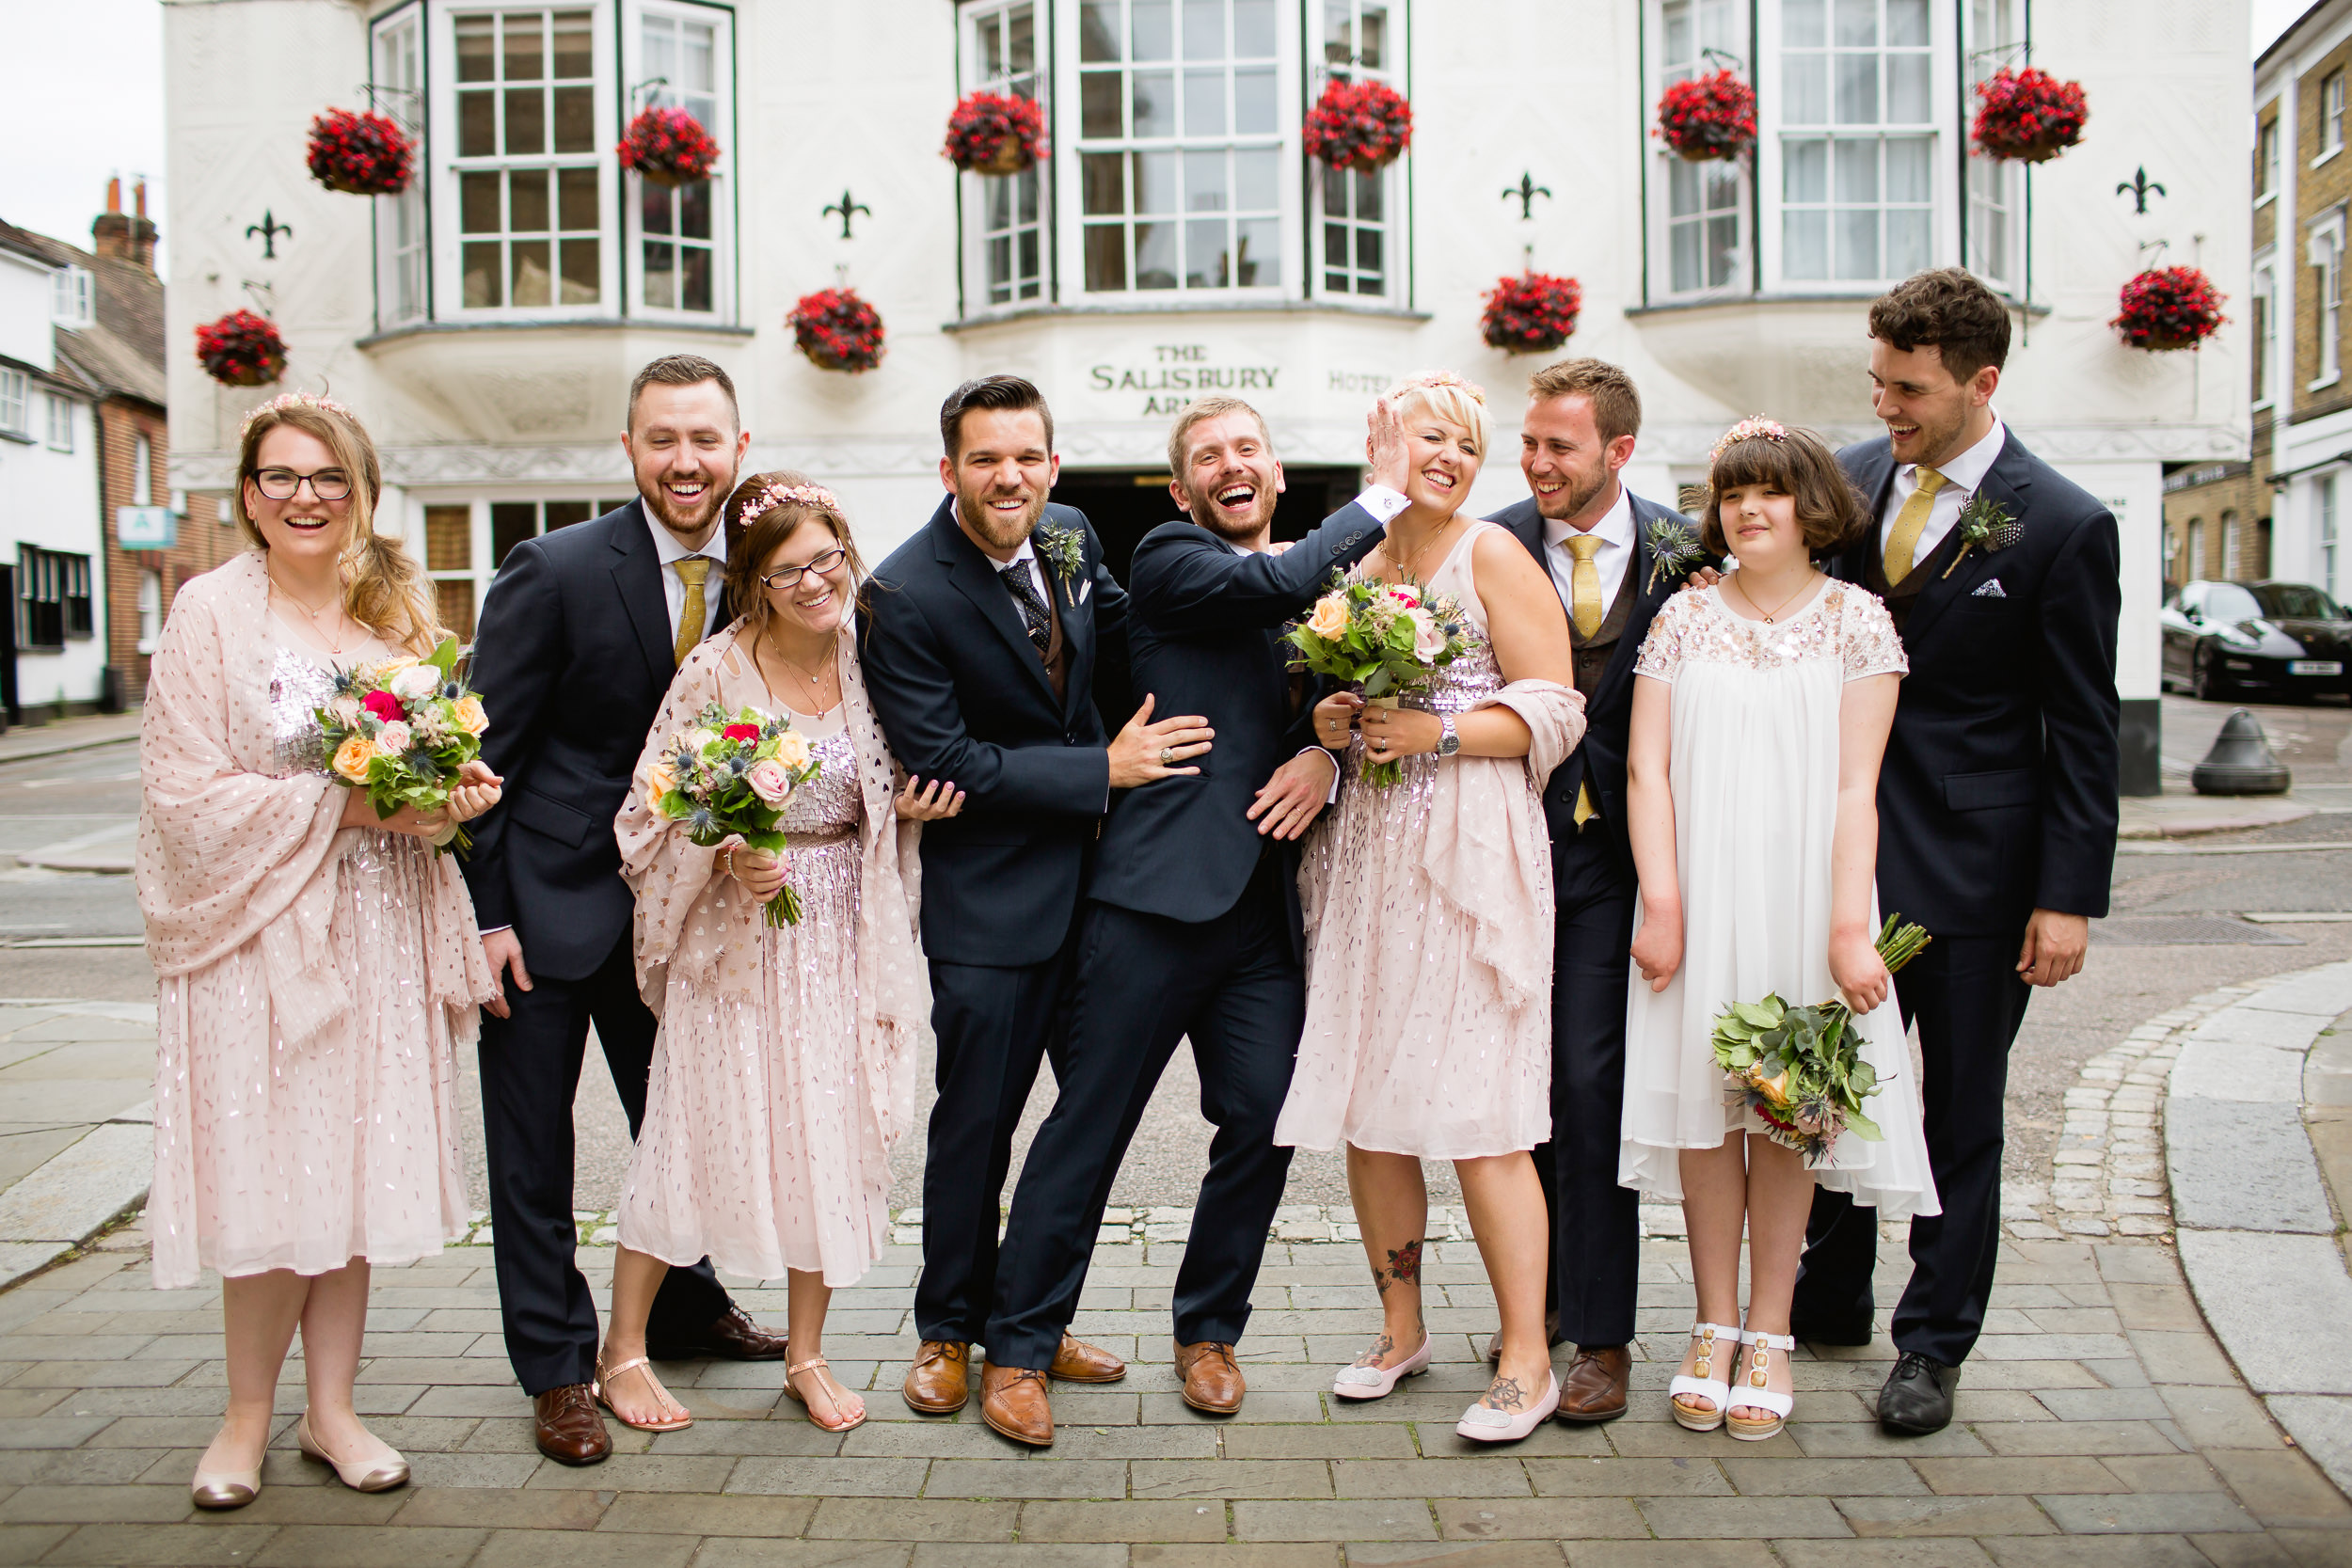 alternative wedding group shoots - same sex wedding - LGBT wedding - Birmimgham wedding